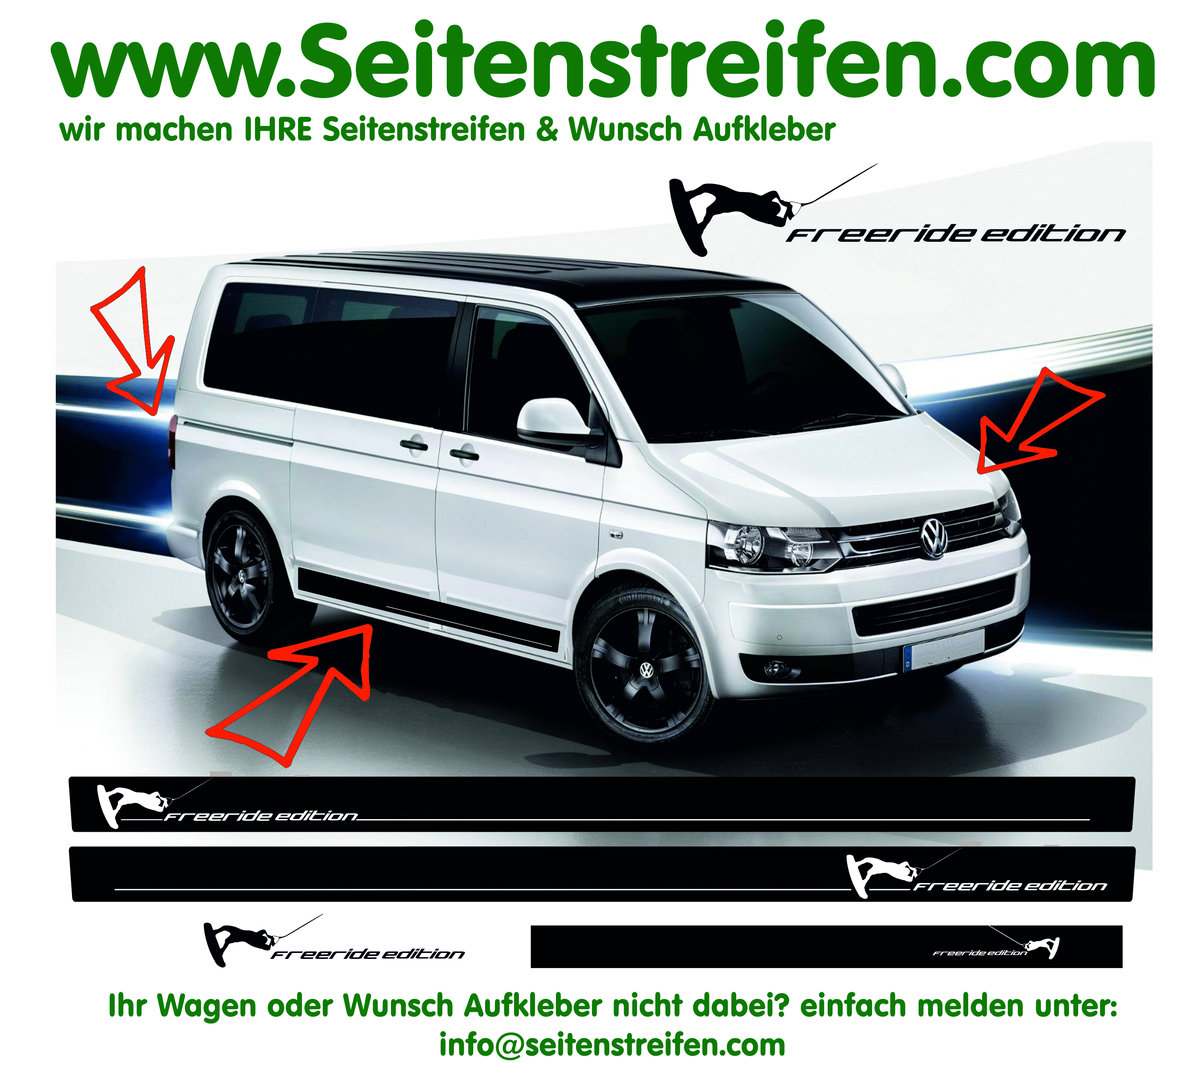 VW Bus T4 T5 T6 - WAKEBOARD Freeride Edition - Side Stripes Graphics Decals Sticker Kit - N° 9732